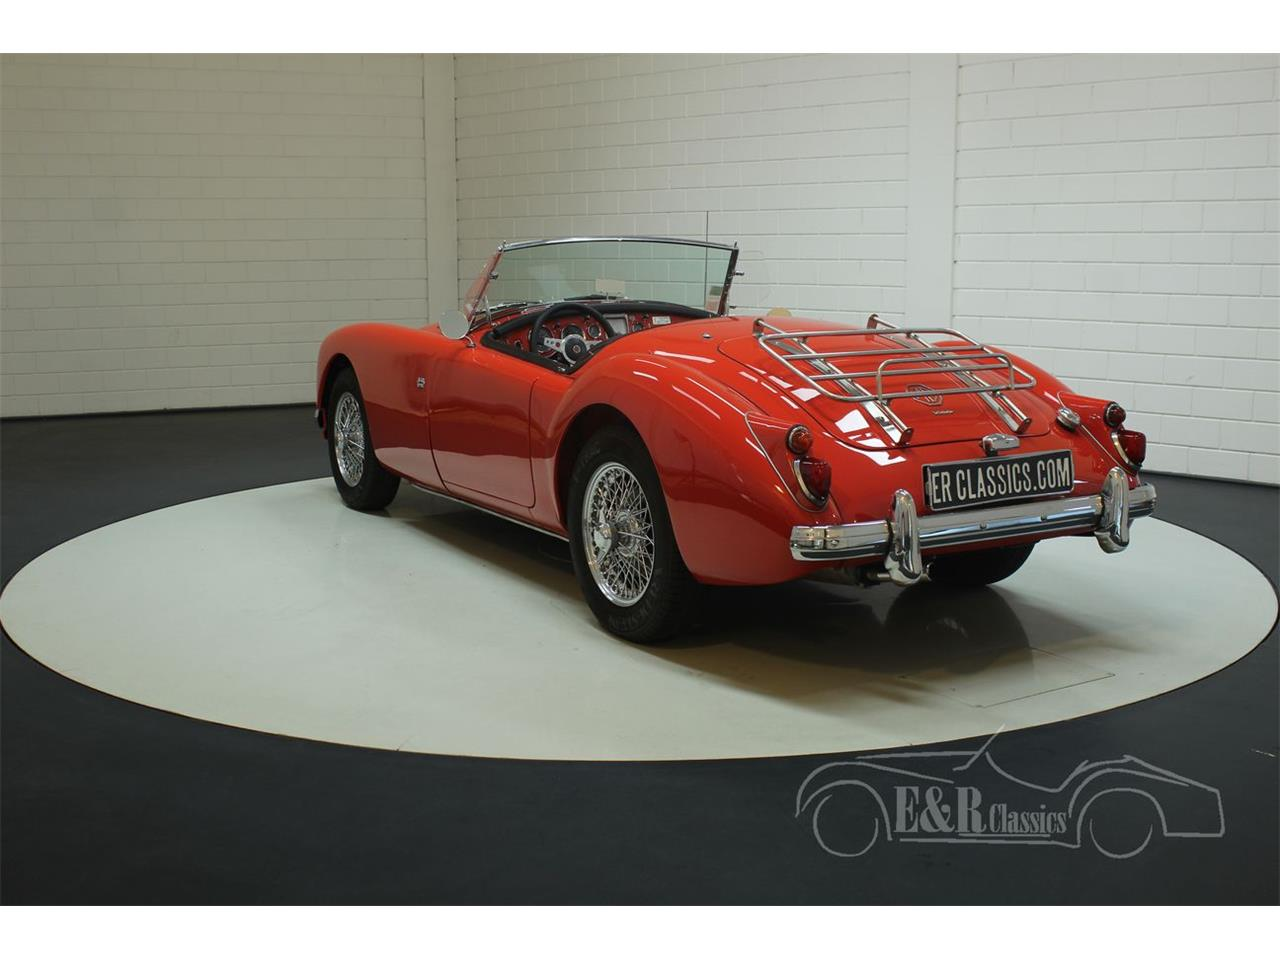 Large Picture of Classic 1962 MG MGA located in Waalwijk noord brabant - $44,900.00 - Q2W8